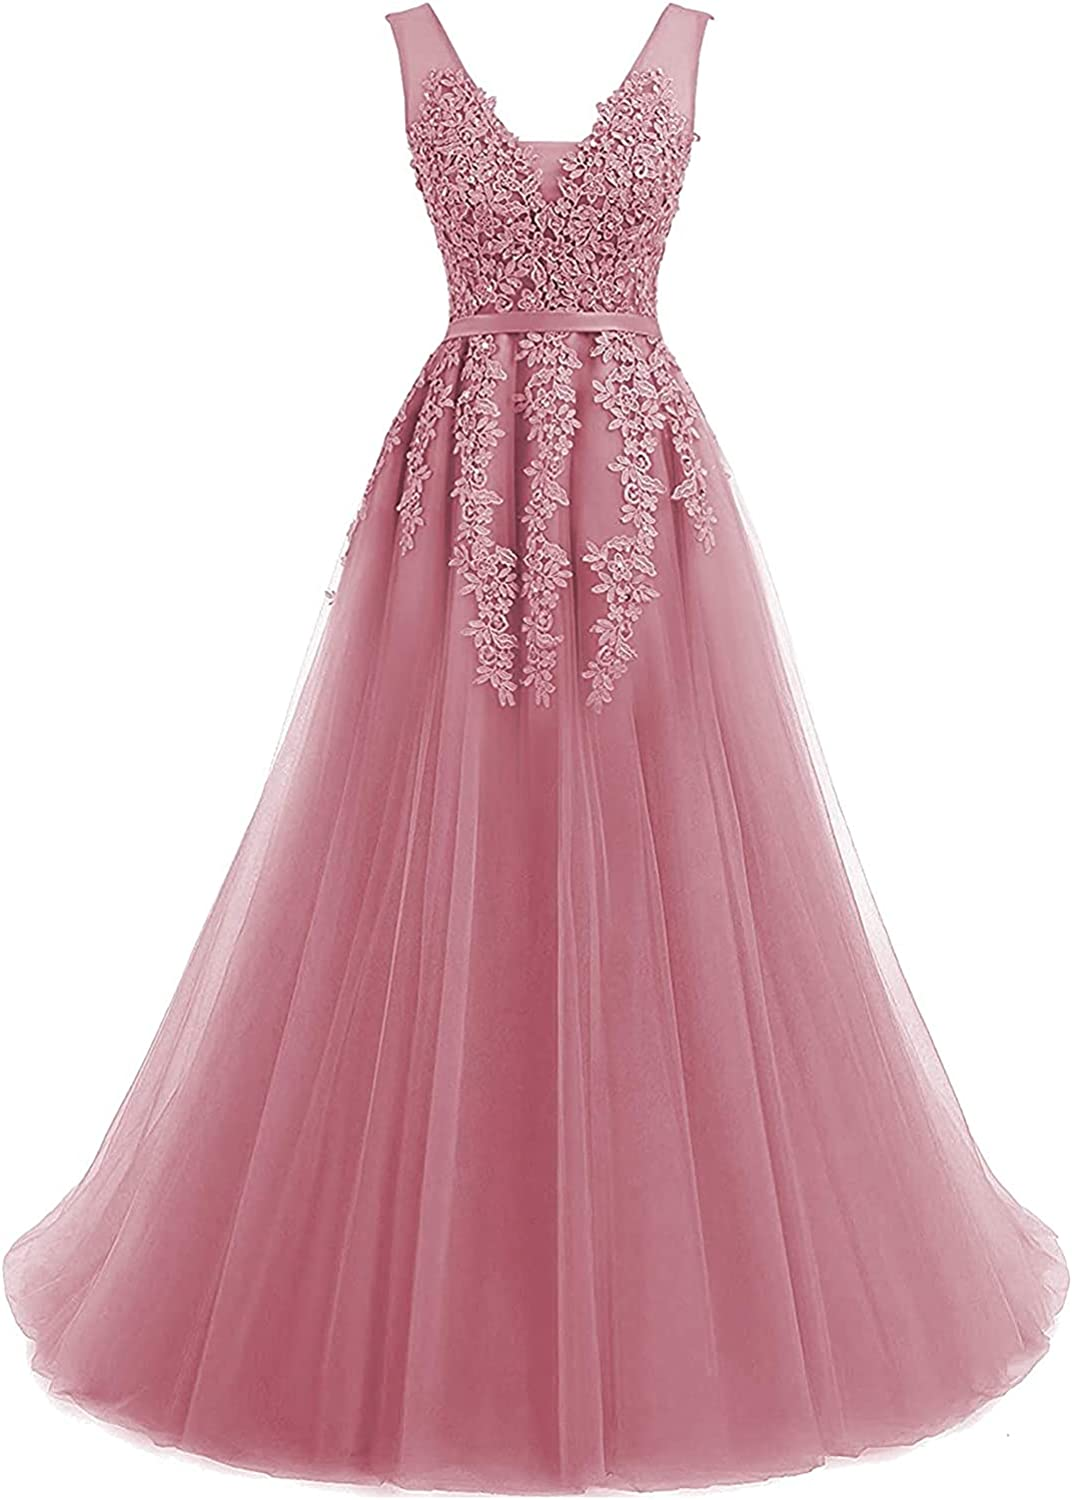 Prom Dress Long Homecoming Dresses Lace Quinceanera Dress for Girls Prom Party Gown Tulle